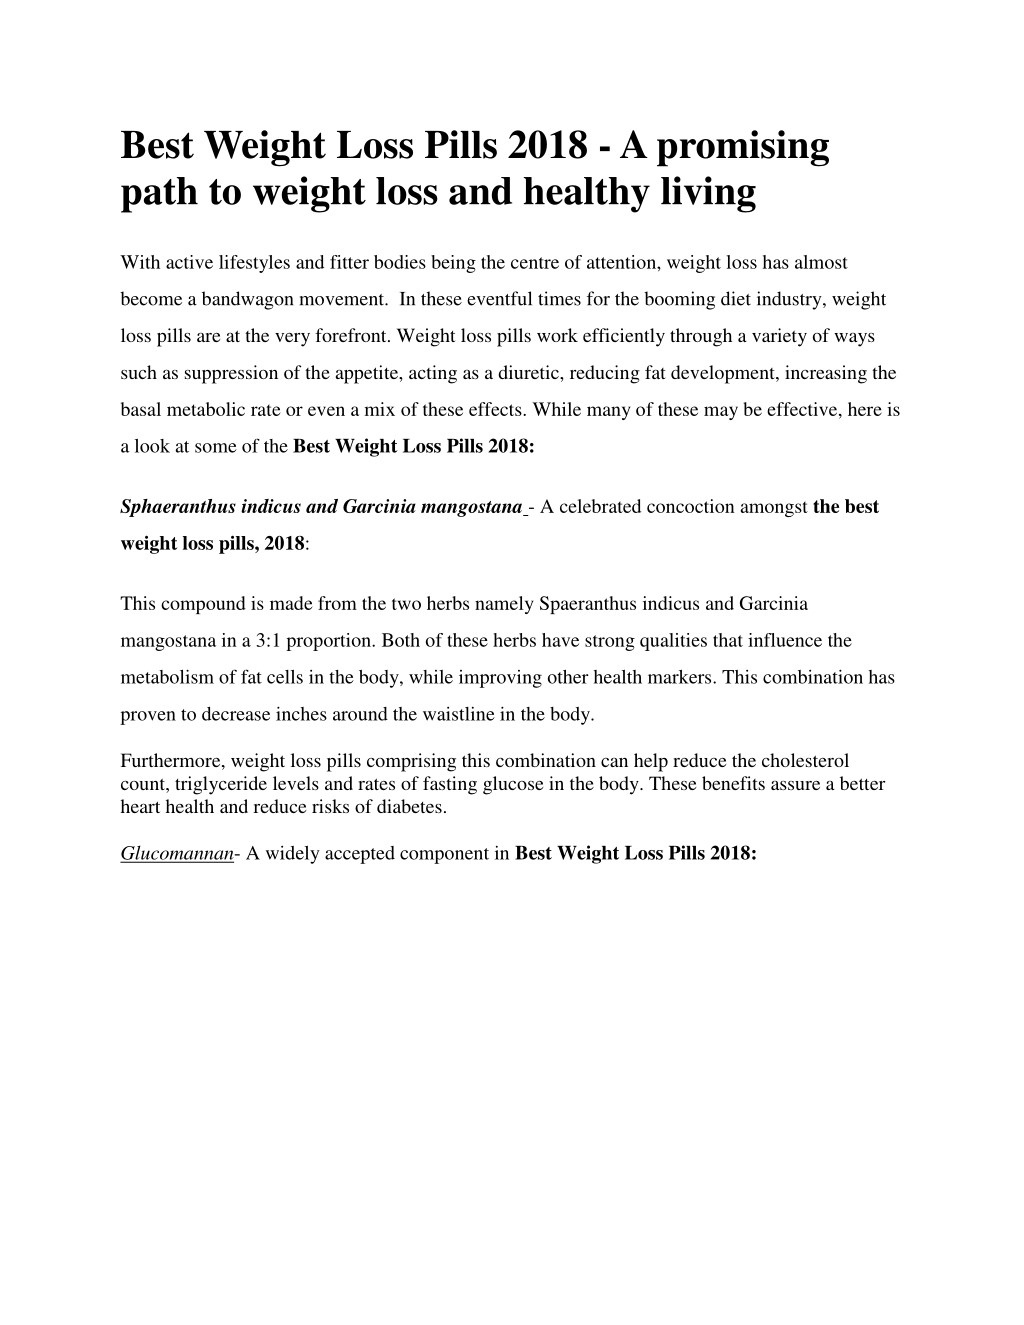 Ppt Best Weight Loss Pills 2018 A Promising Path To Weight Loss